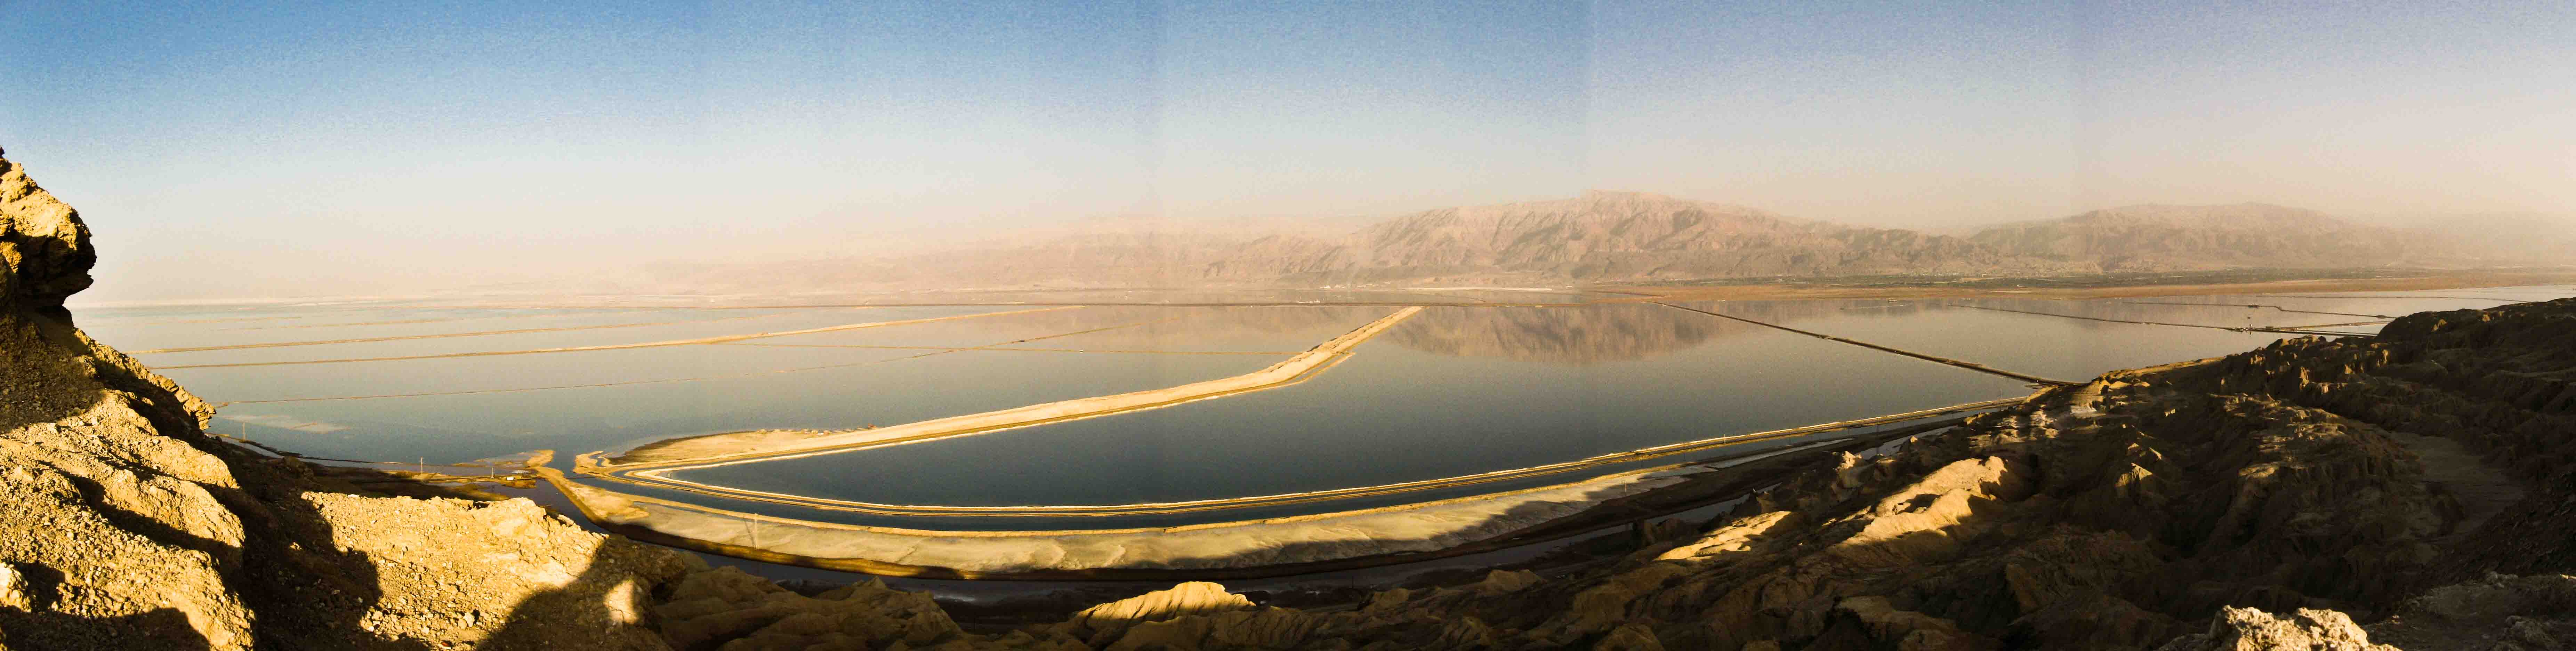 English: Panorama of the Dead sea from Mount Sdom